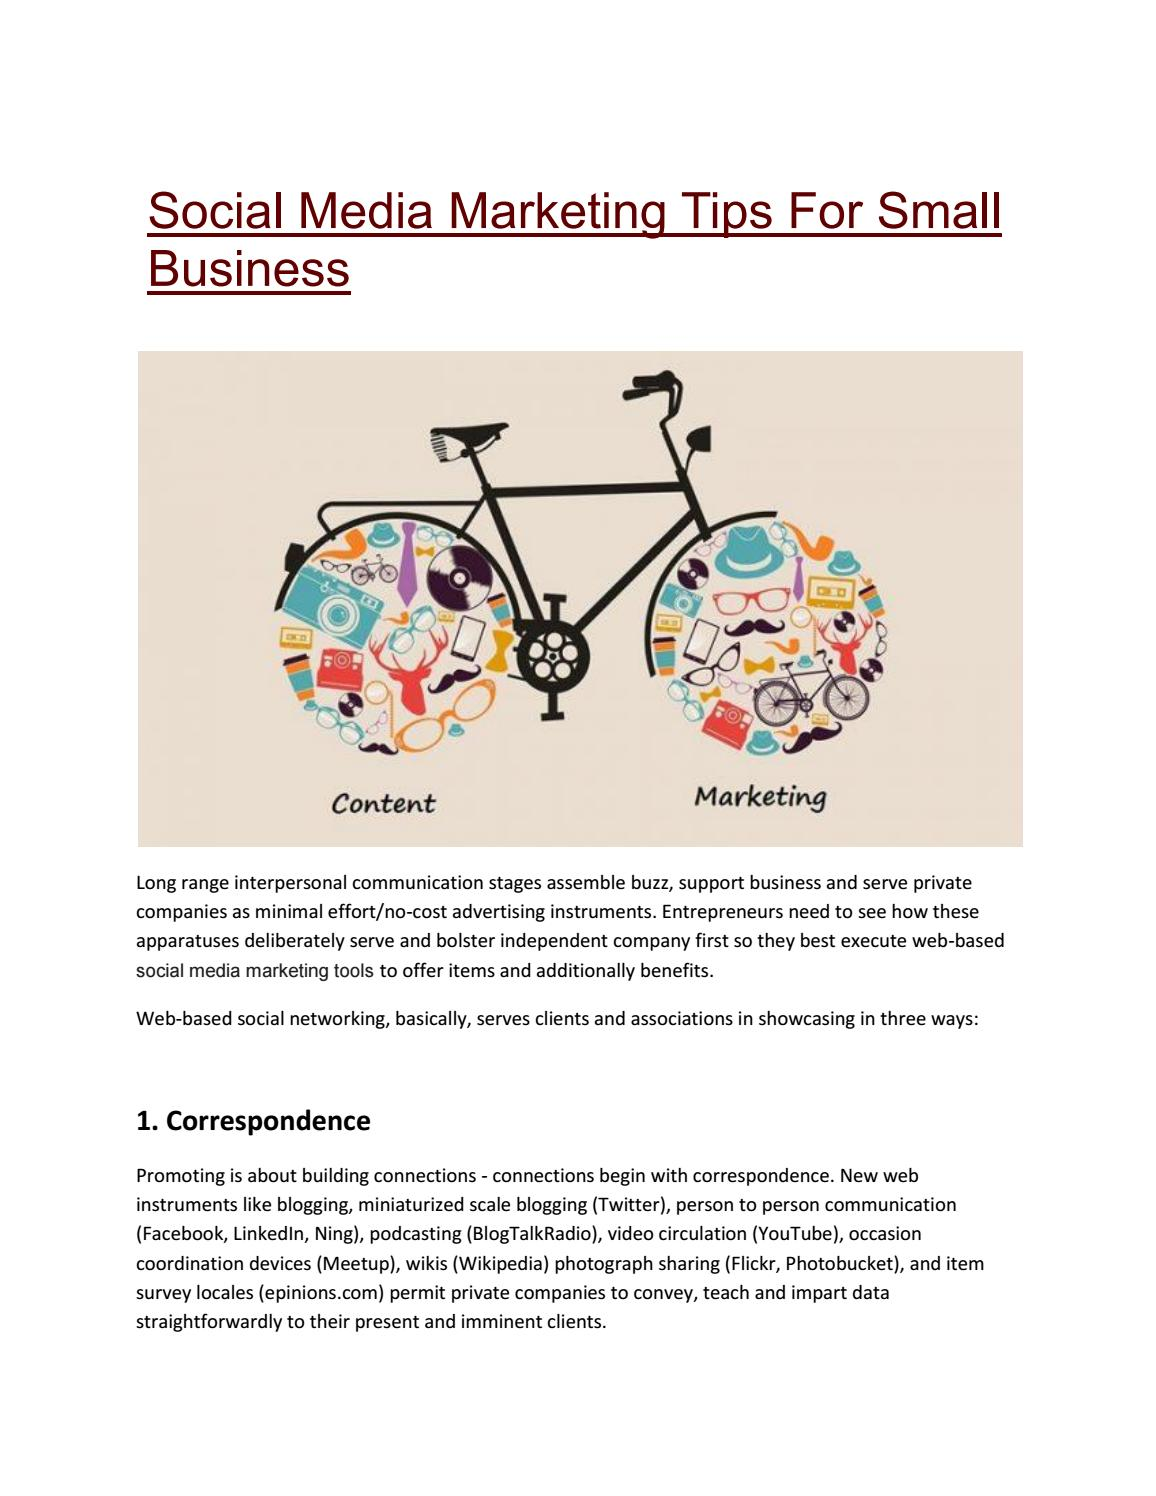 Social Media Marketing Tips For Small Business By Middleton Issuu Network Diagram Corporate Office Flickr Photo Sharing